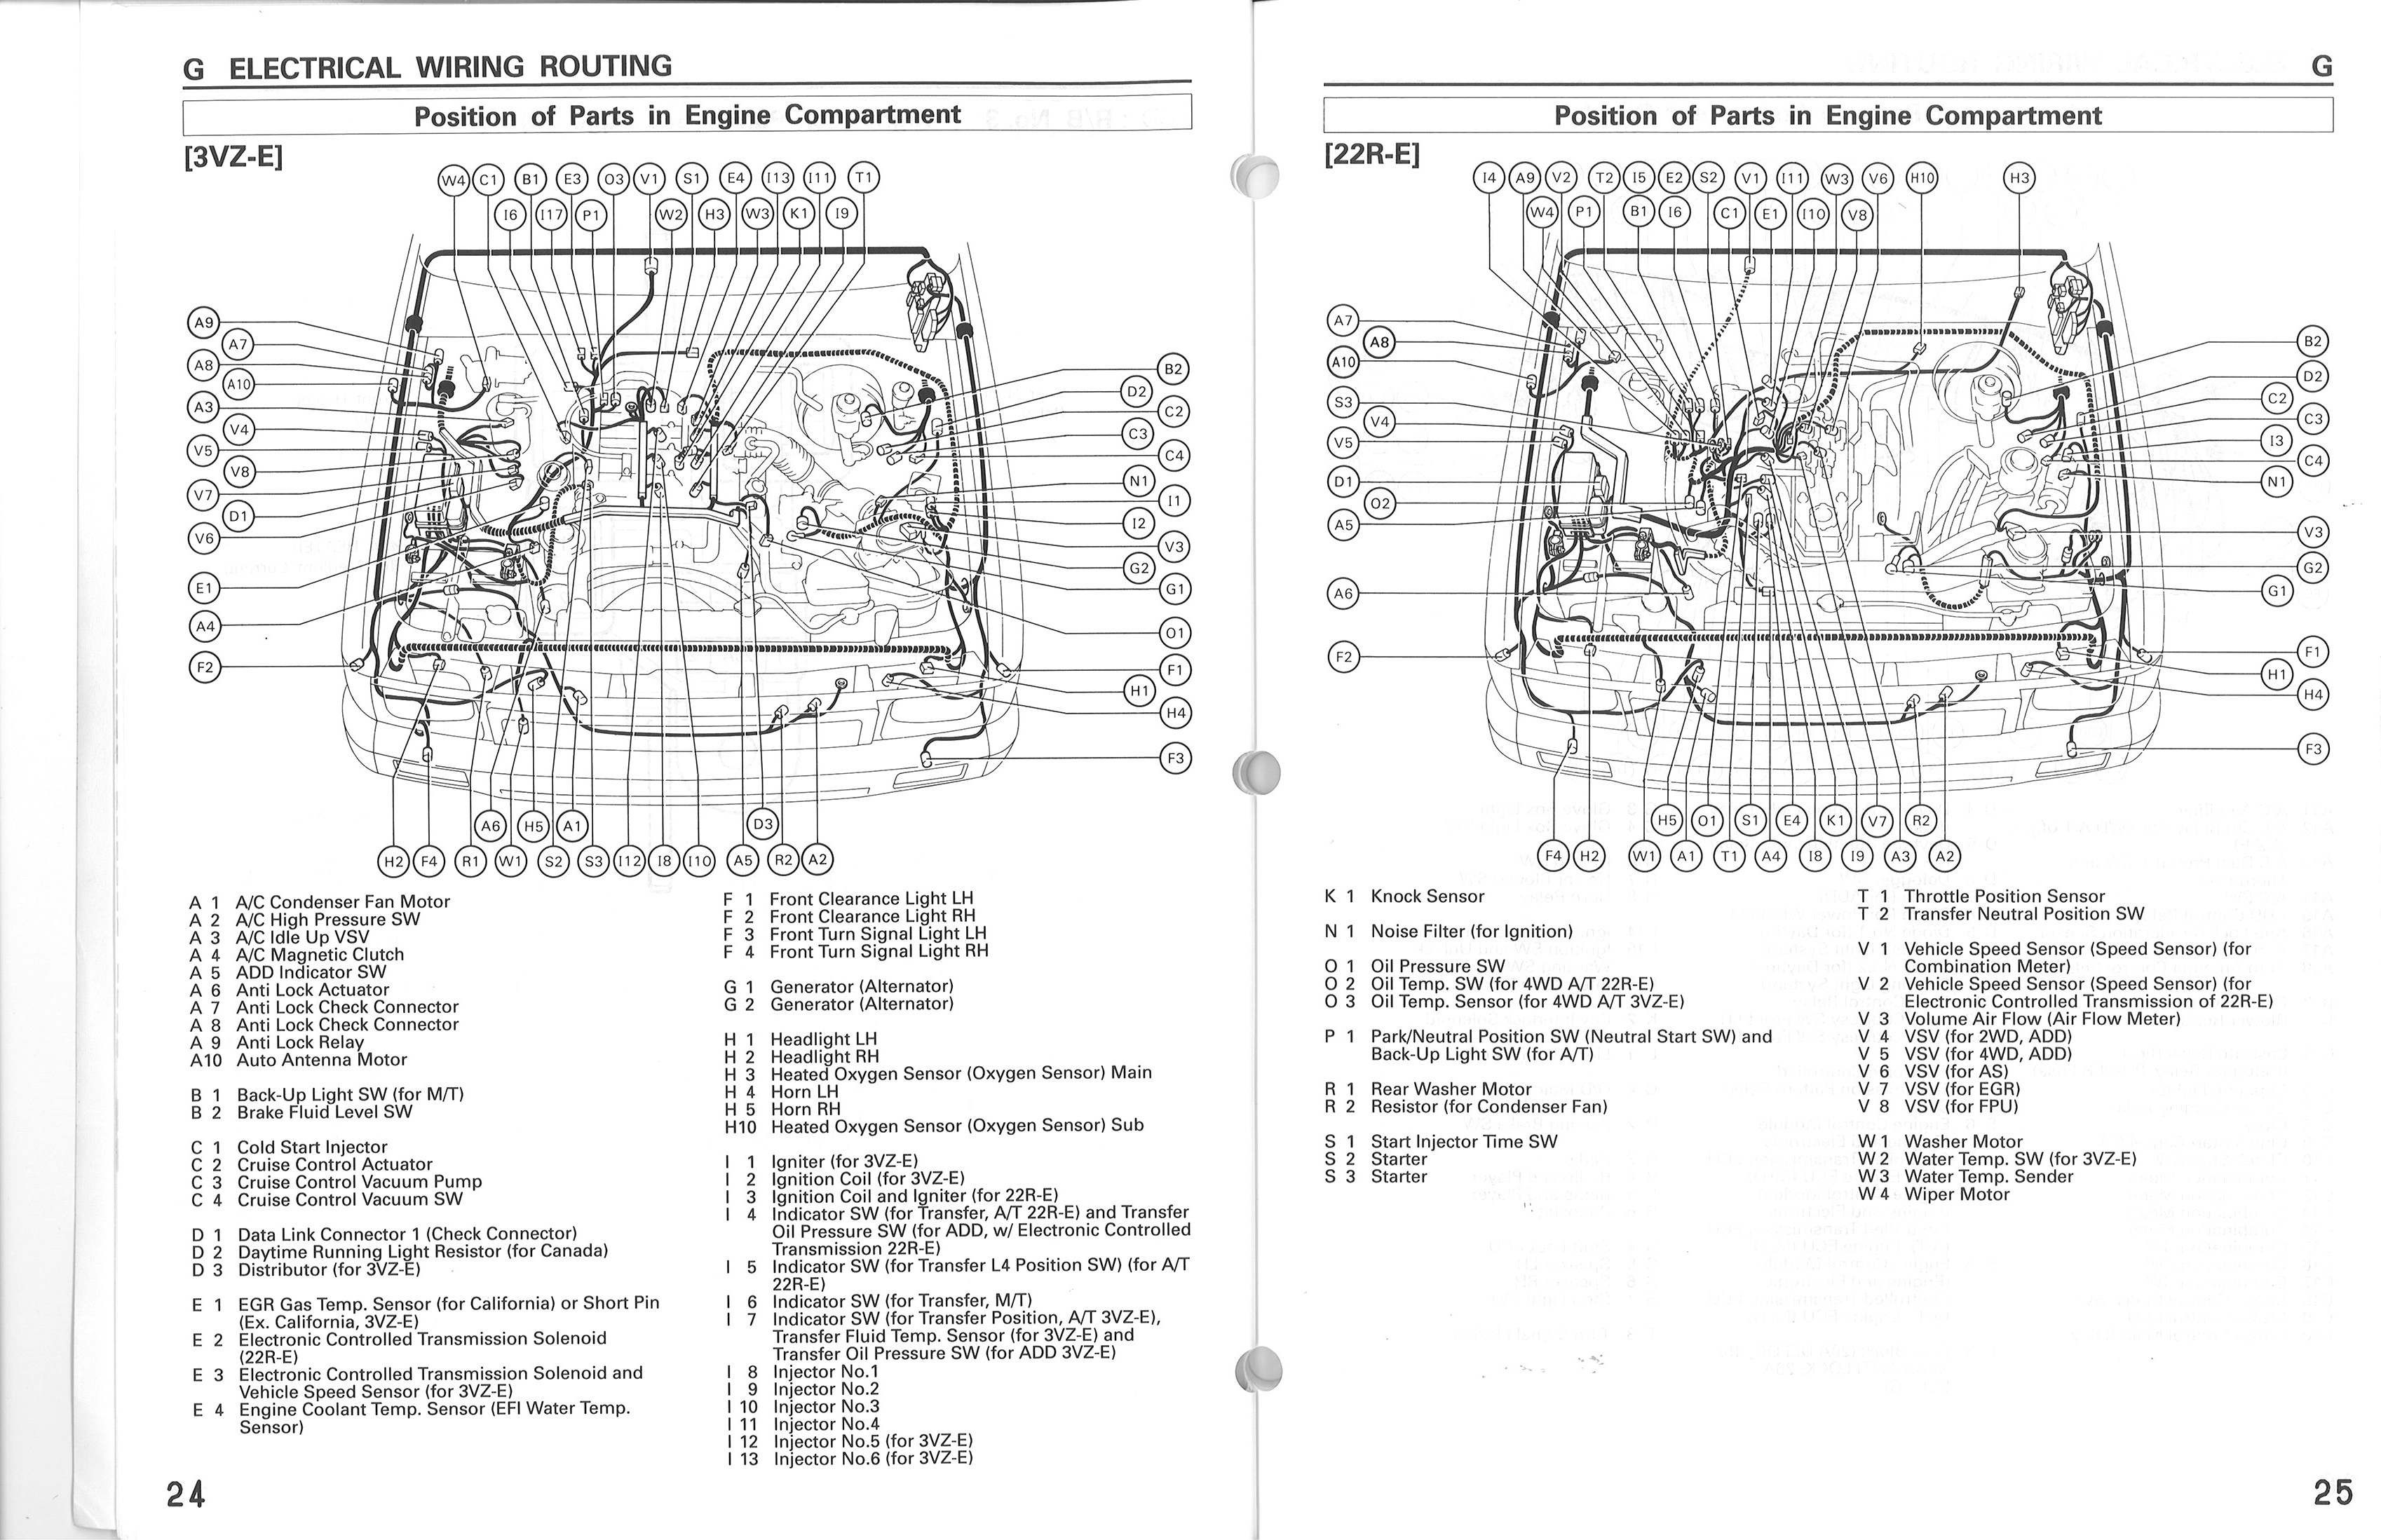 Wiring Diagram For Nissan Sentra